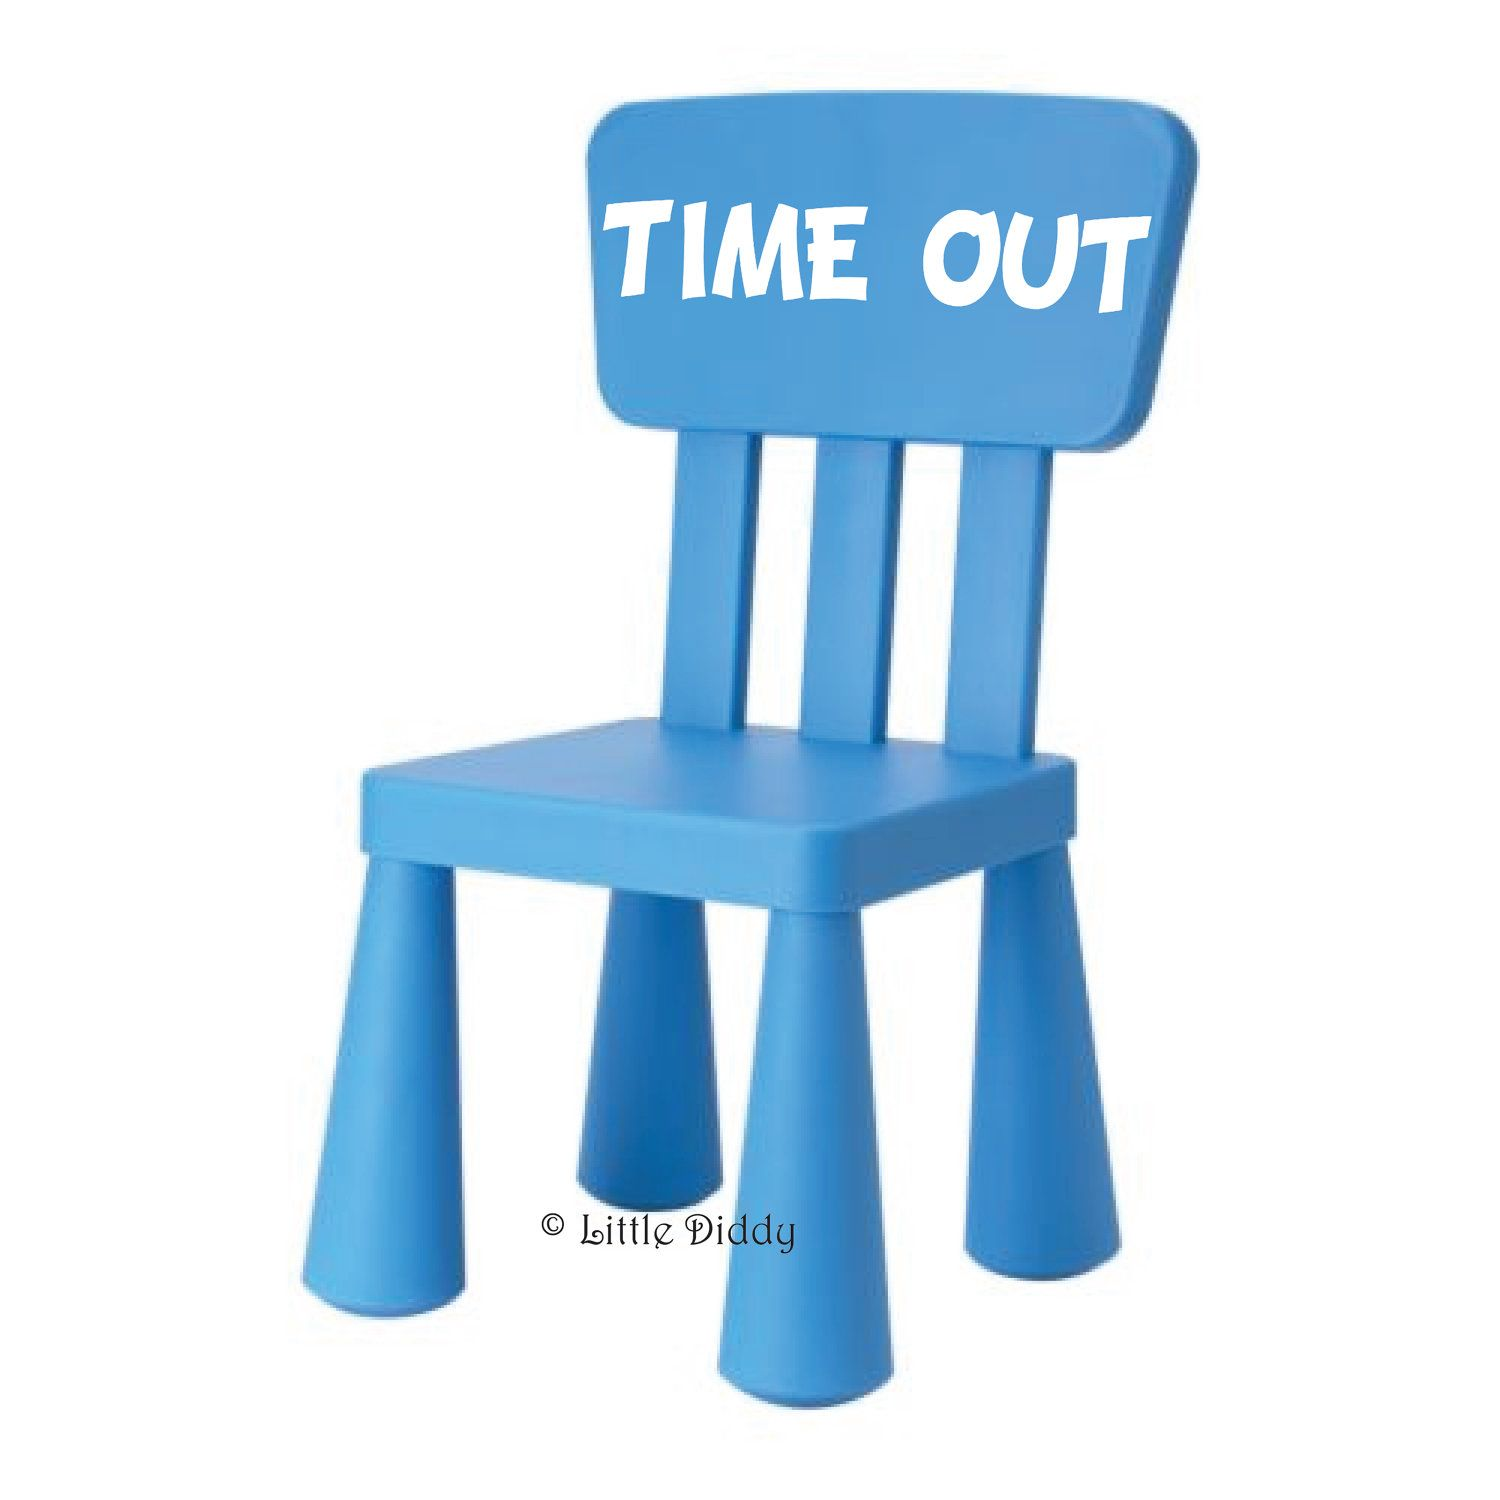 Time Out Vinyl Decal Perfect For A Time Out Chair Corner Child 39 S Room Or Play Room